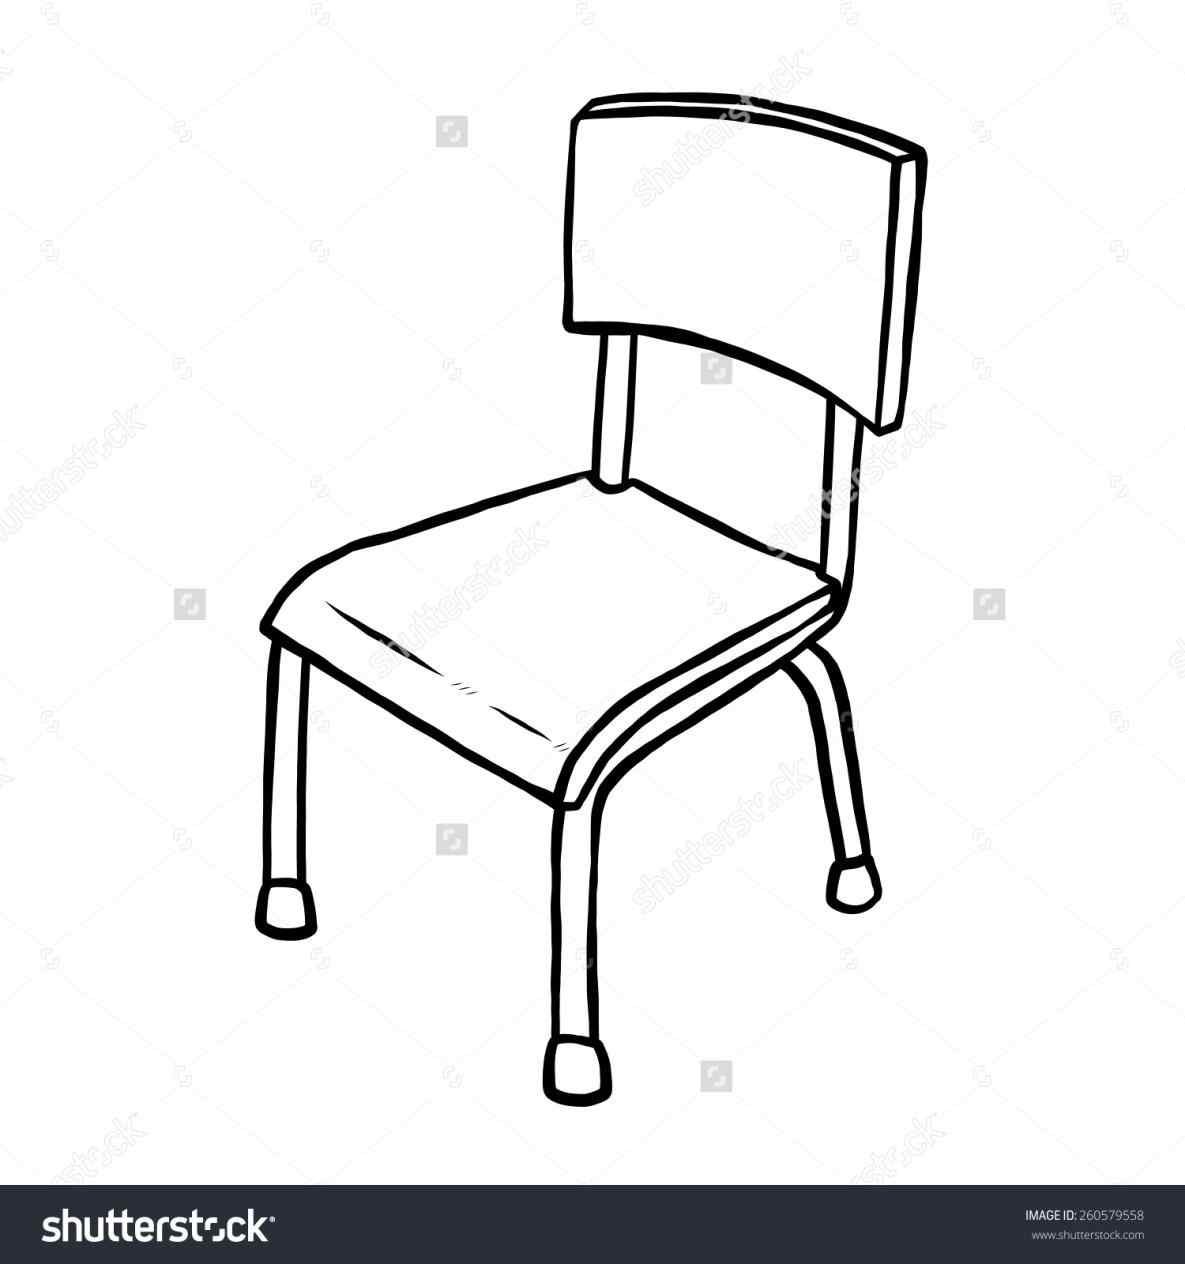 The images collection of. Chair clipart black and white